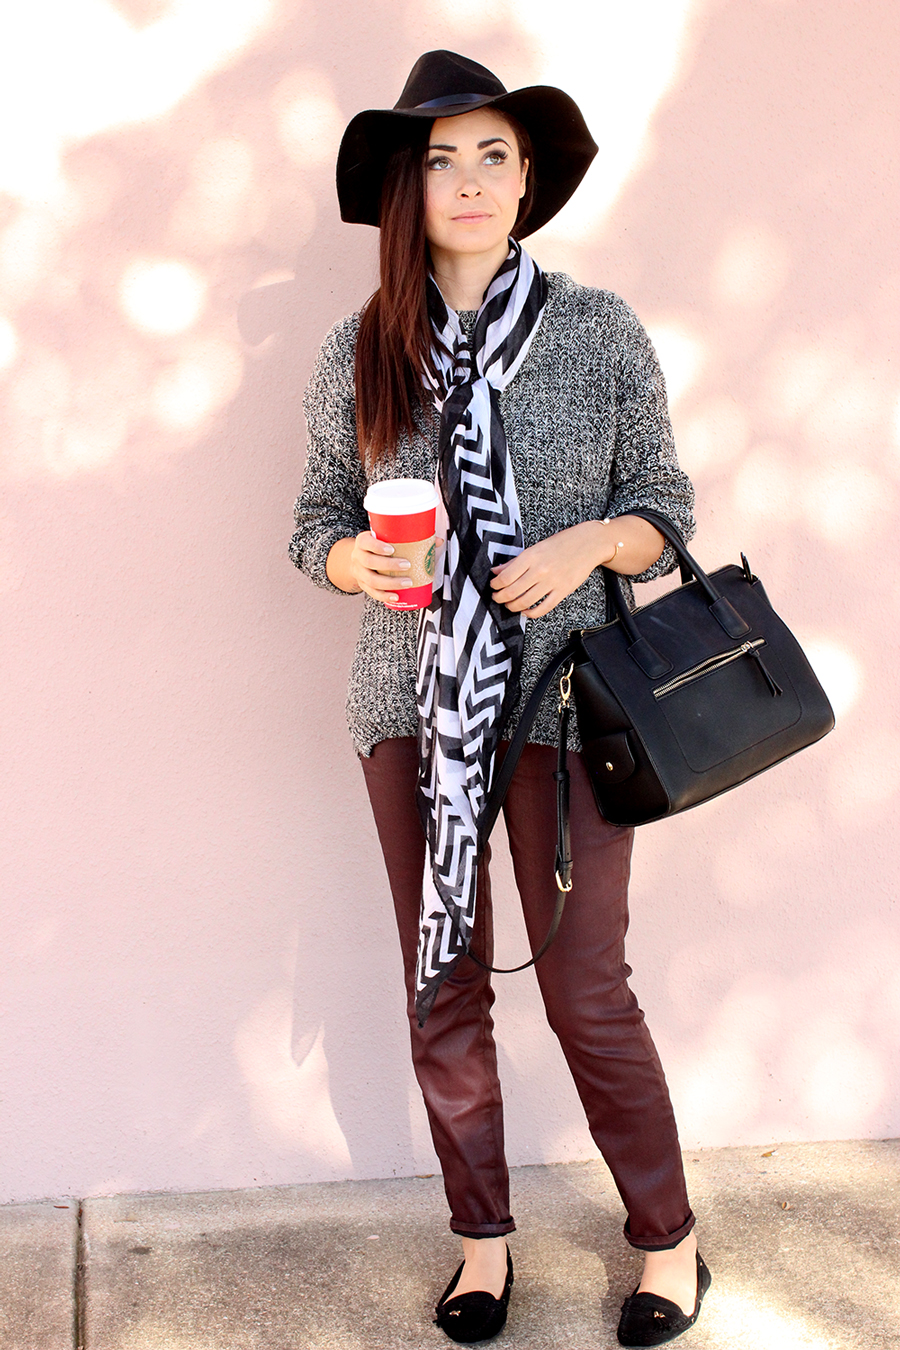 FIXIN-TO-THRILL-LEATHER-PANTS-KNITS-SHEIN-LUCKY-BRAND-NOVEMBER-ATX-AUSTIN-STYLE-BLOG-FW15-TRENDY-CHIC-GLAM-TEXAS